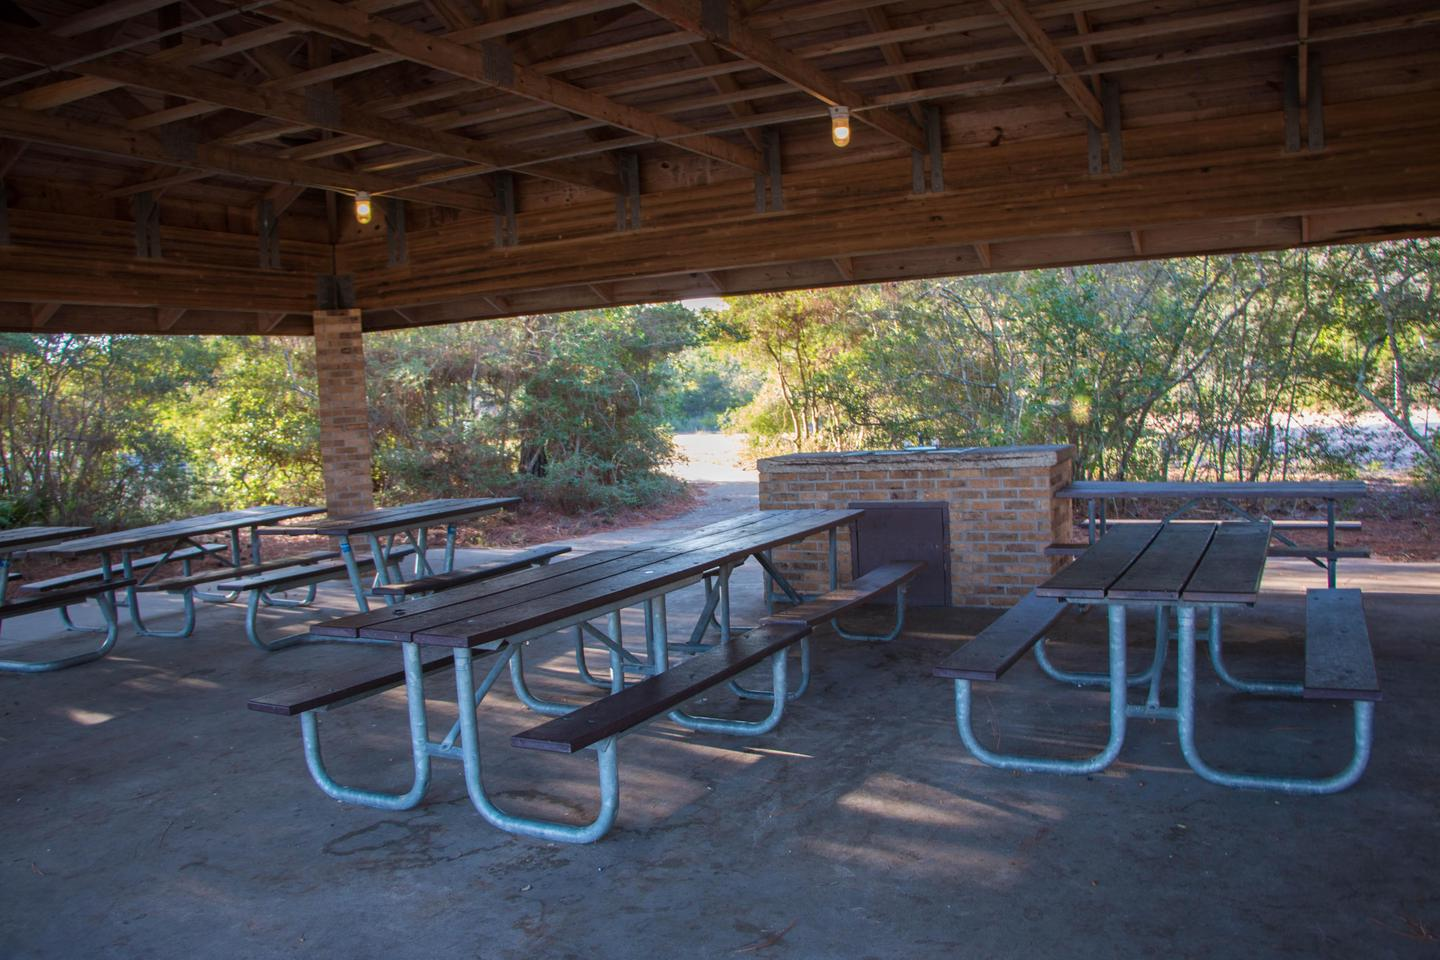 PavilionThe youth campground features a large picnic pavilion, perfect for gathering the whole group beneath for meals or activities.